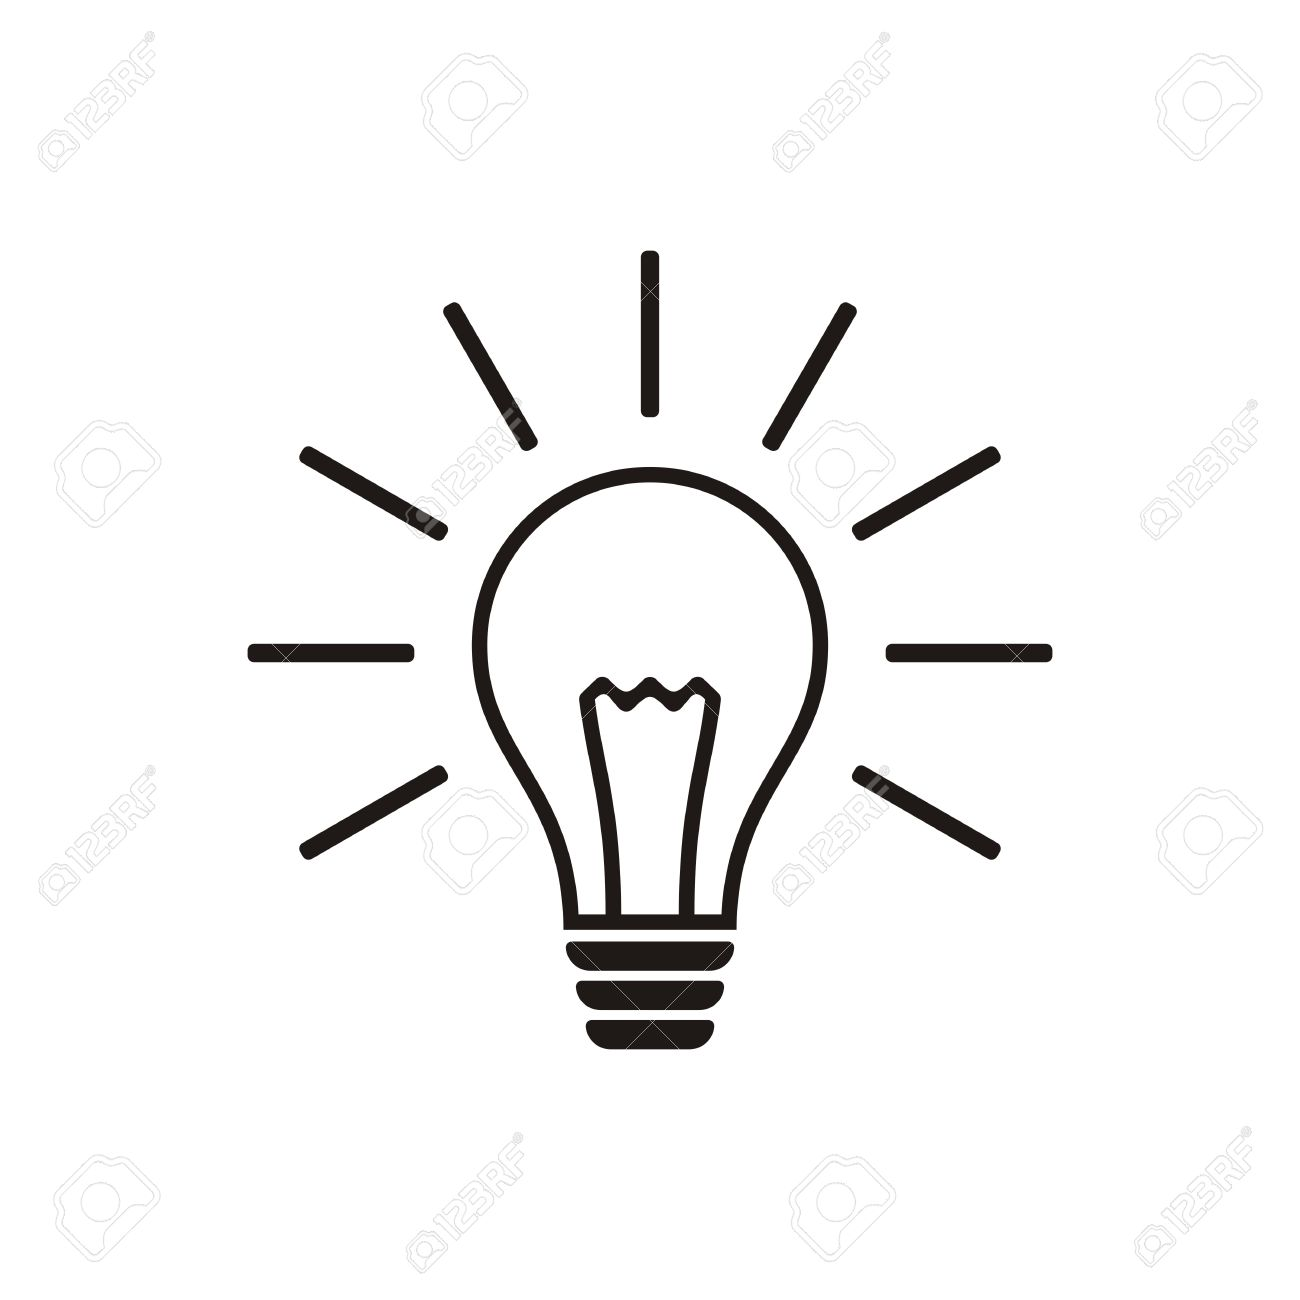 Simple Black Light Bulb Vector Icon Isolated Royalty Free Cliparts ... for Black Light Bulb Clip Art  61obs